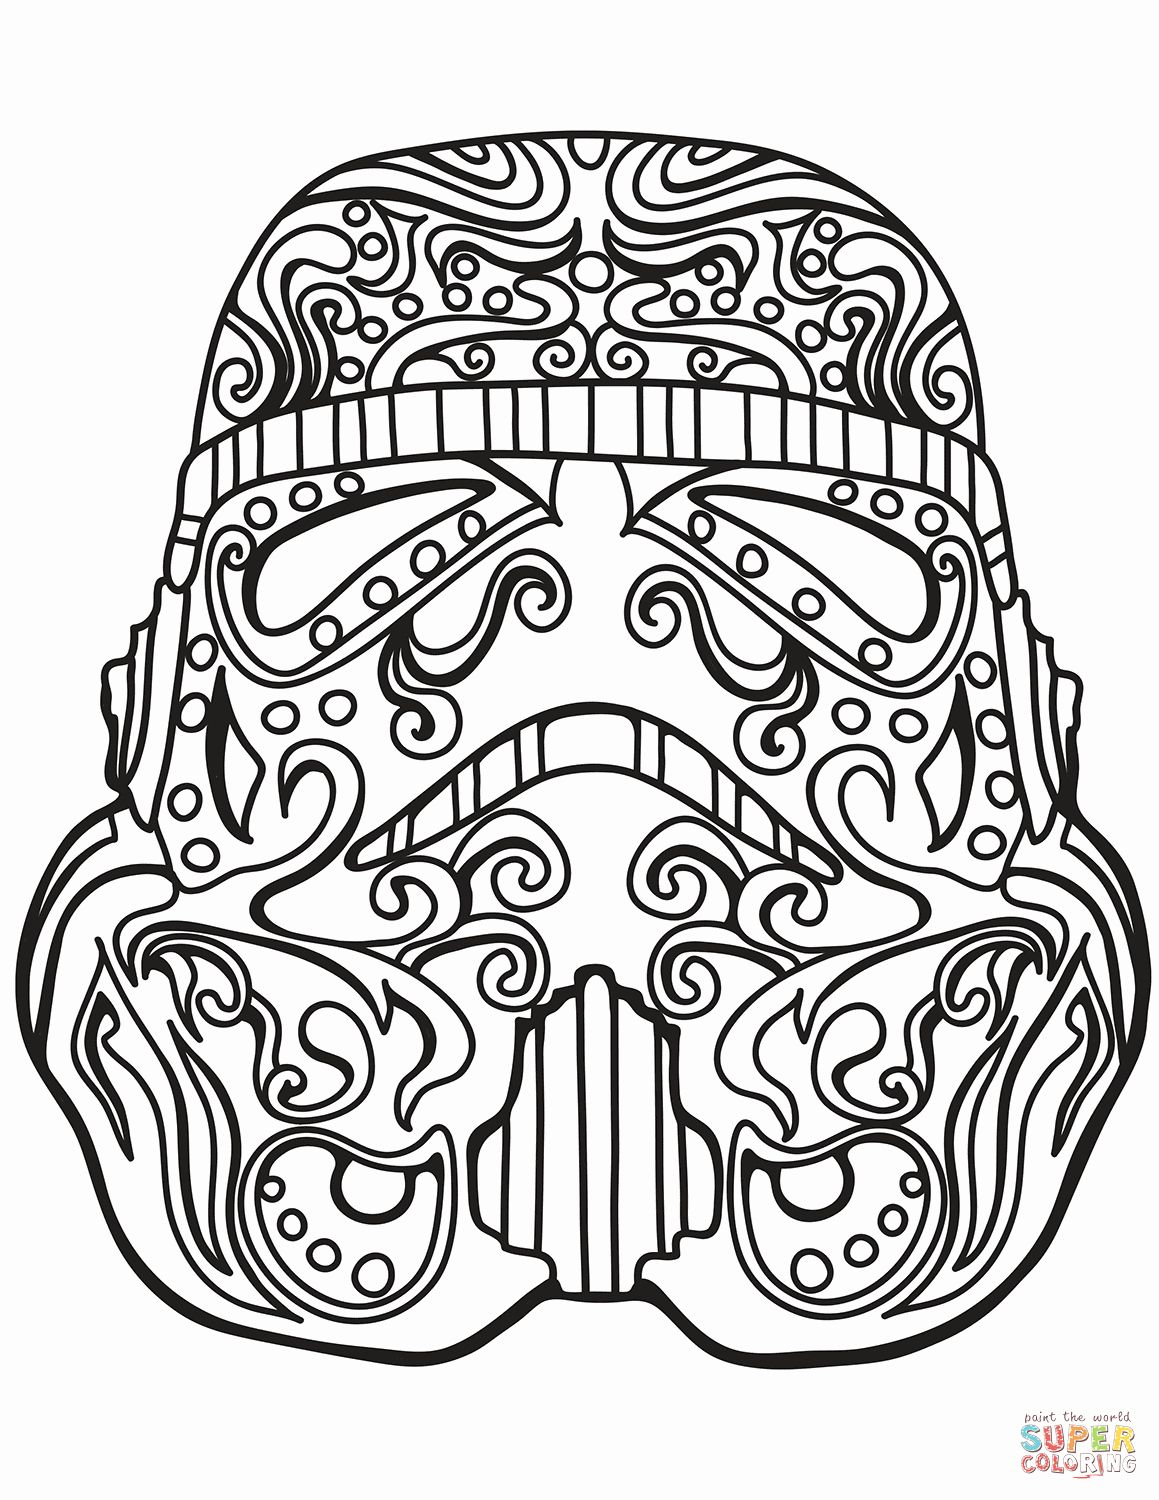 Star Wars Adult Coloring Book Inspirational Star Wars